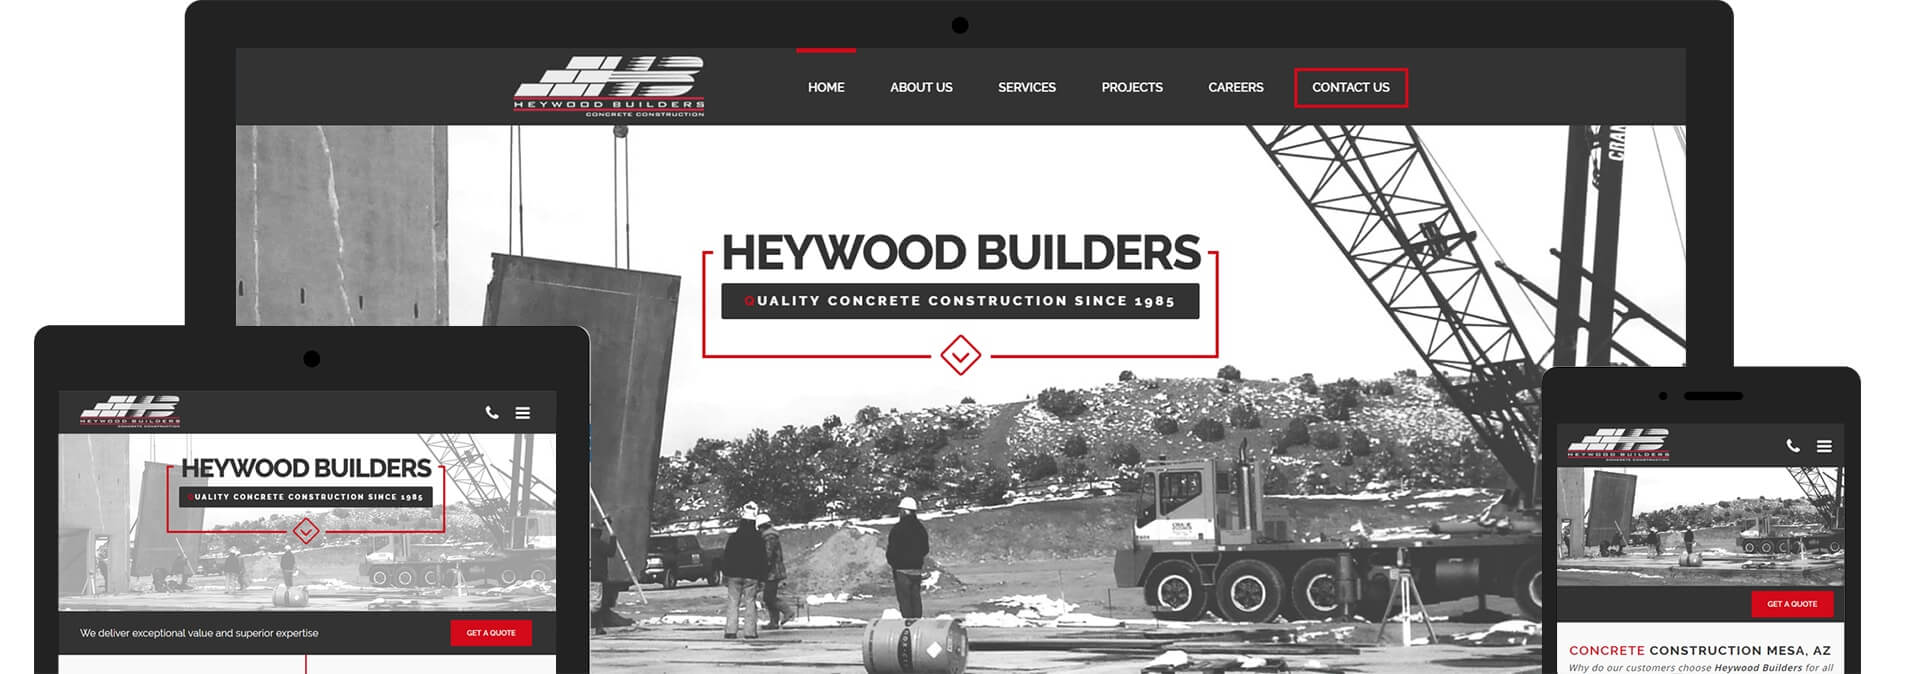 Heywood Builders Concrete Construction Custom Responsive Website